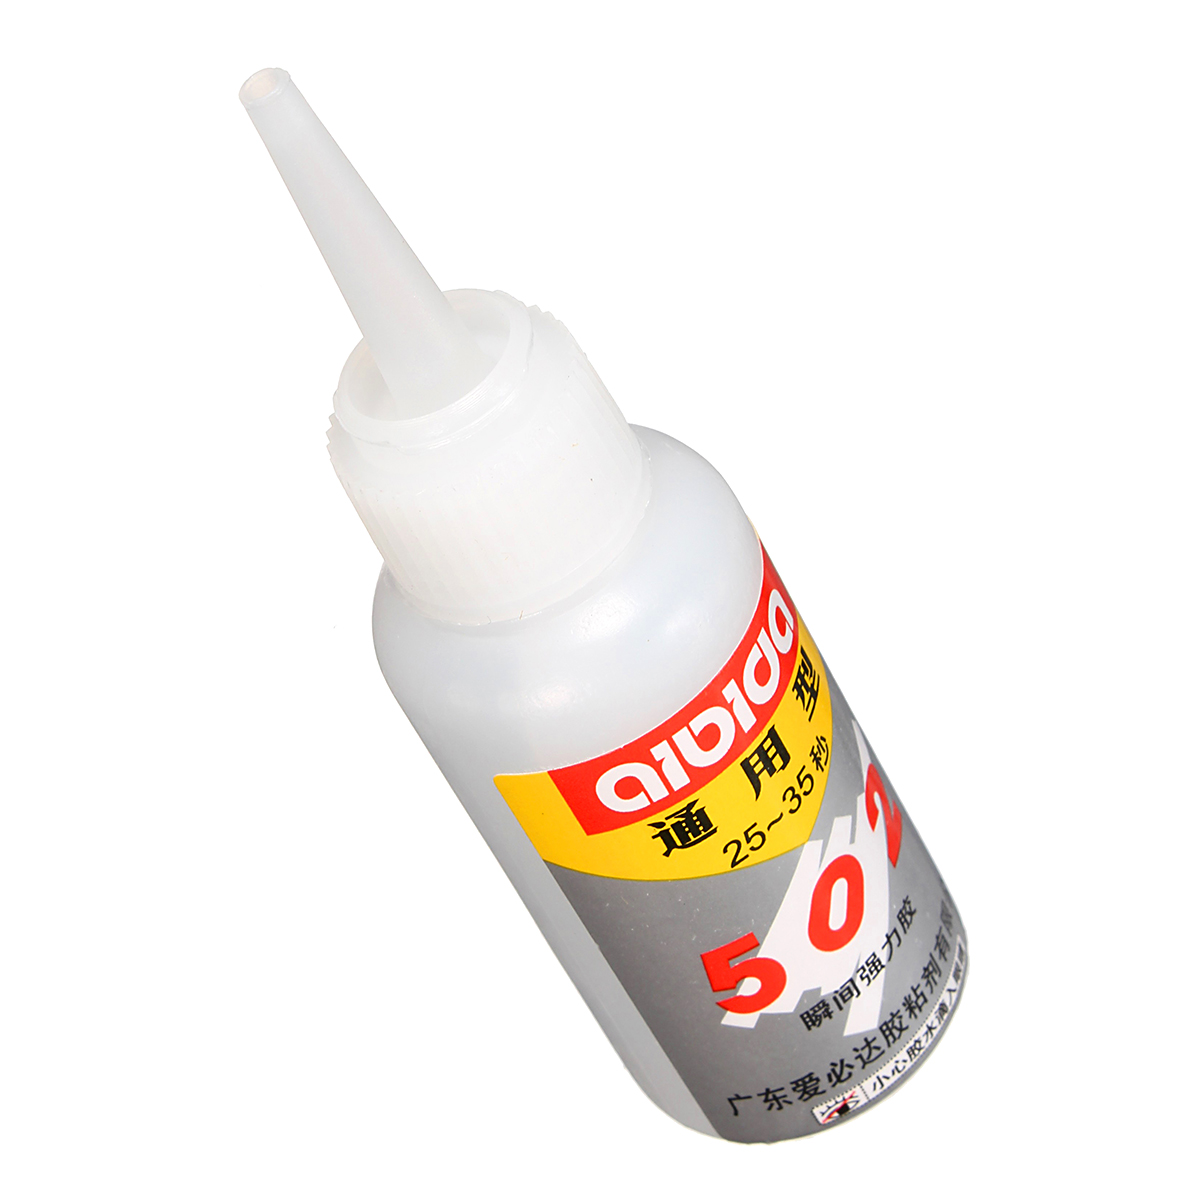 Crazy Glue Super Glue 502 Instant Quick Drying Adhesive Fast Strong Bond For Leather Rubber Metal 15g